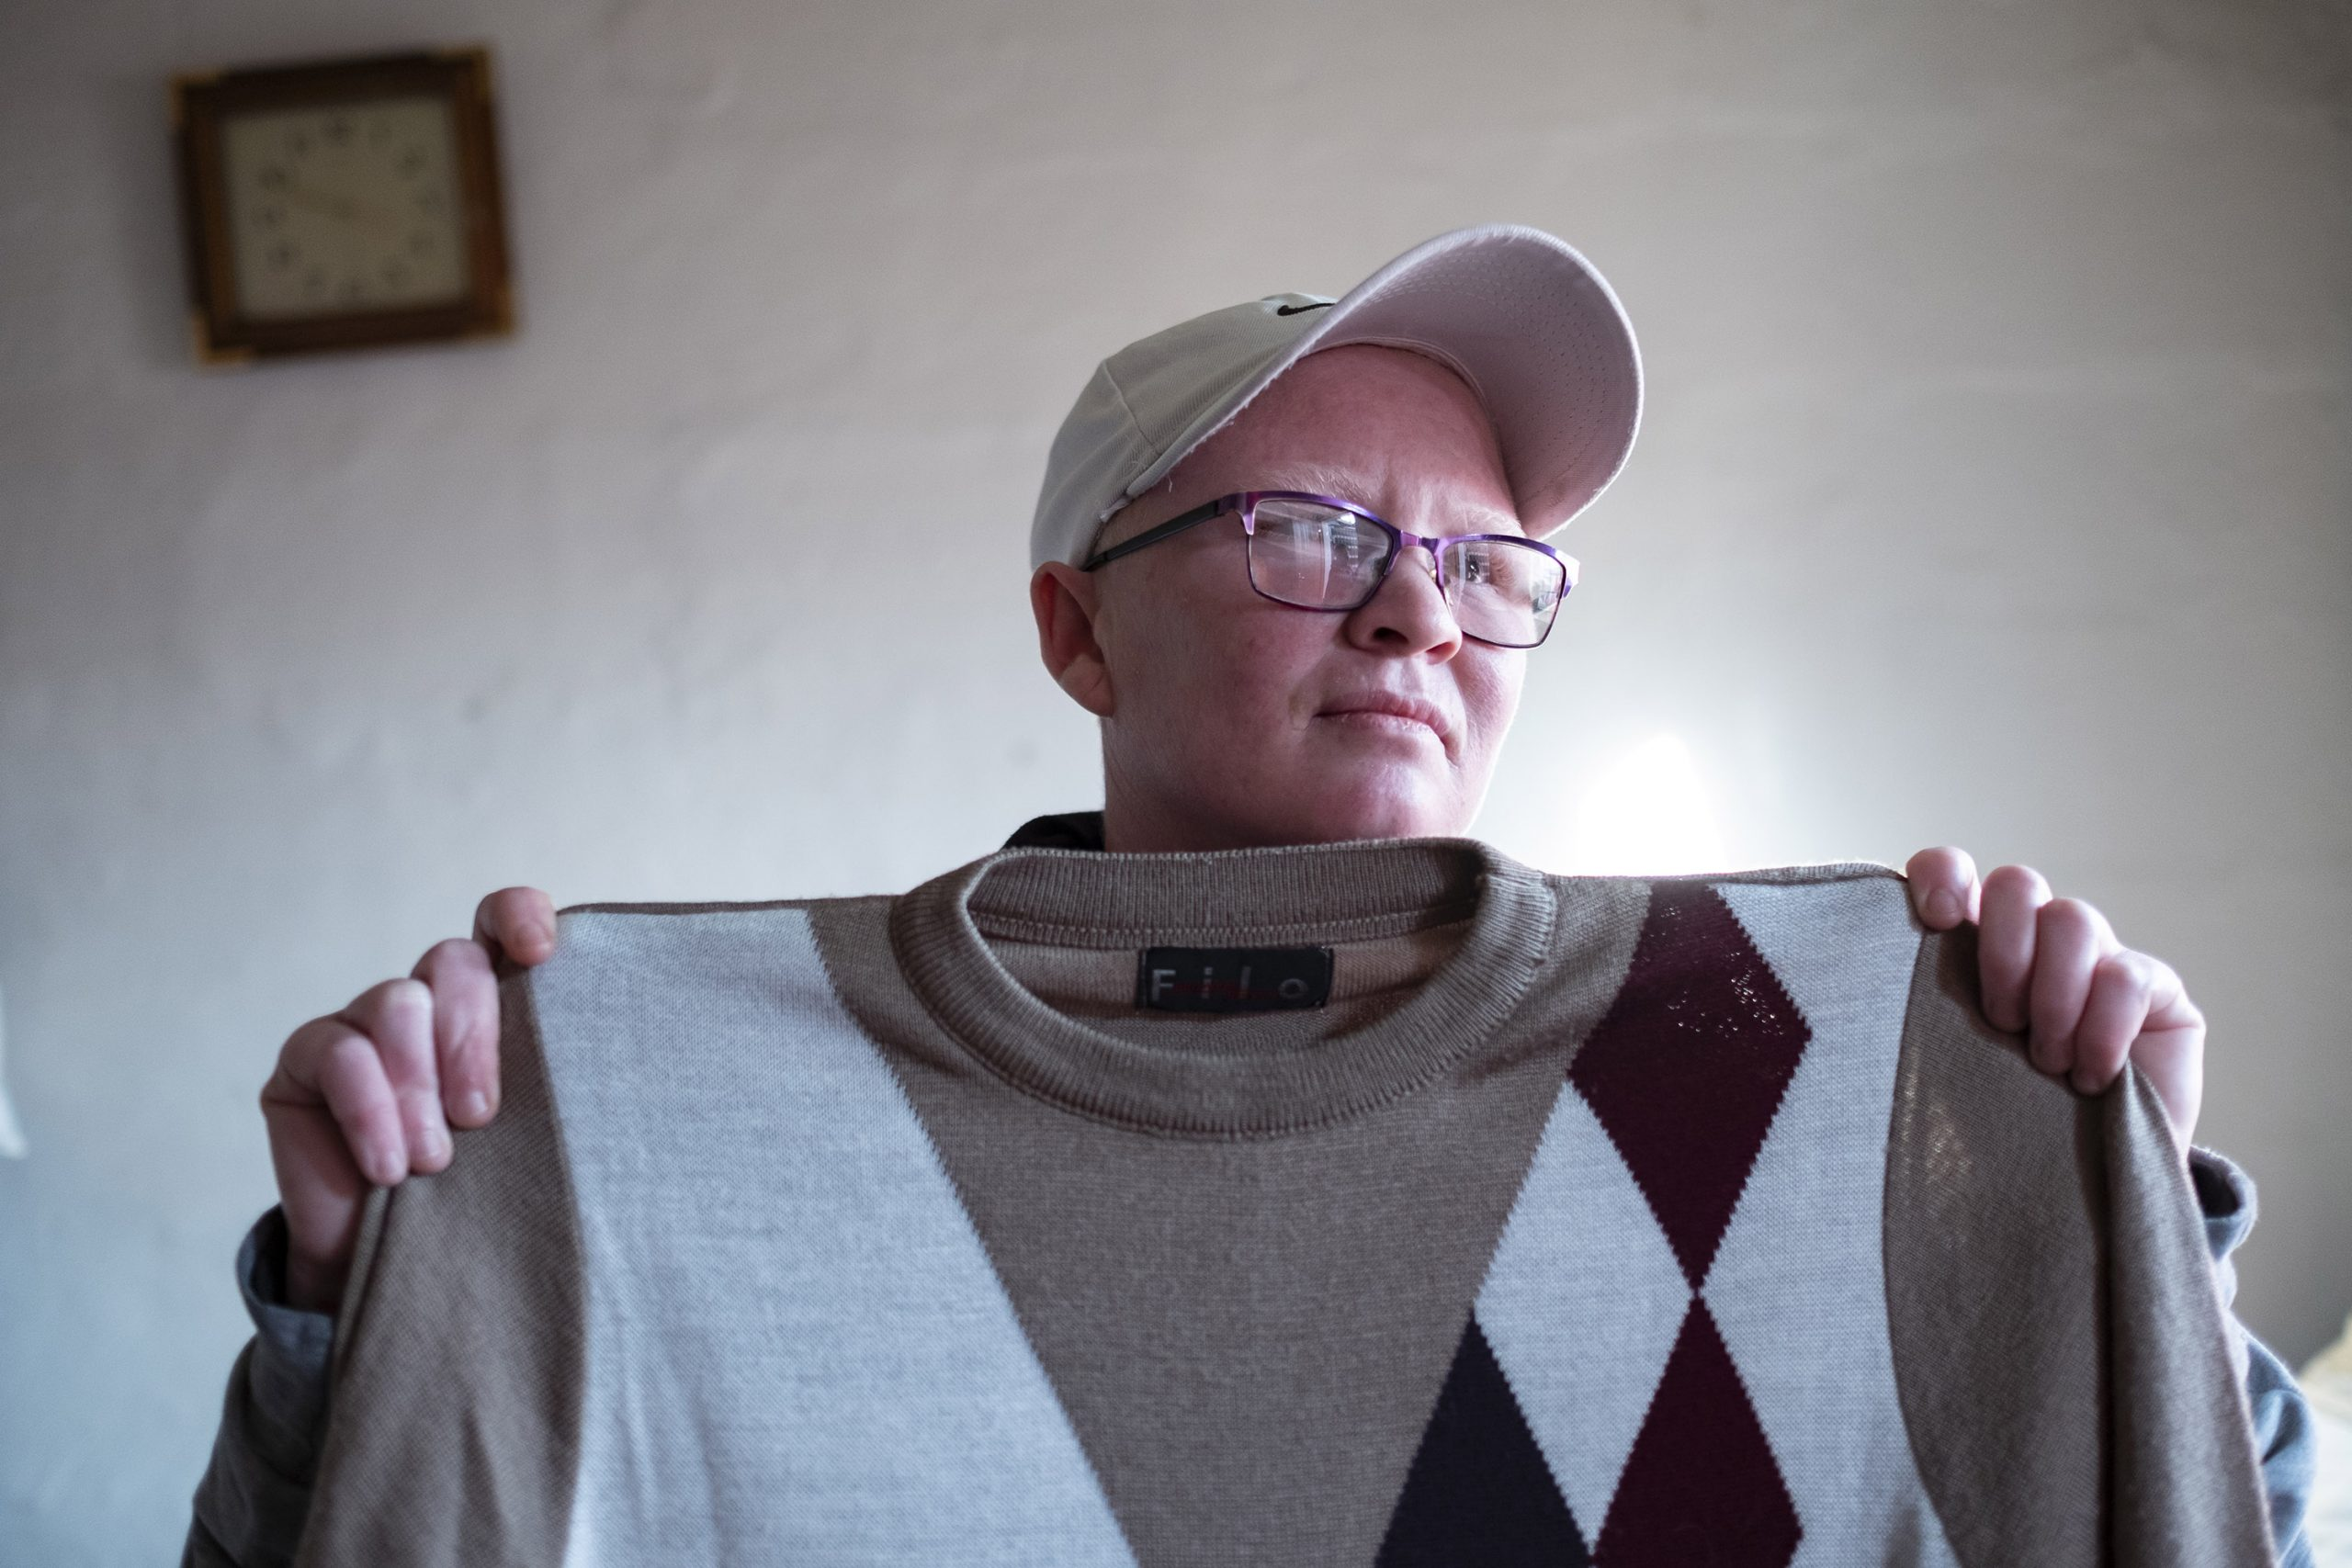 9 June 2020: Valene Meintjies, Cecilia Meintjies' daughter, lives with her wife in a Wendy house in her mother's backyard. She holds a jersey that used to belong to Petrus Miggels. (Photographs by Barry Christianson)